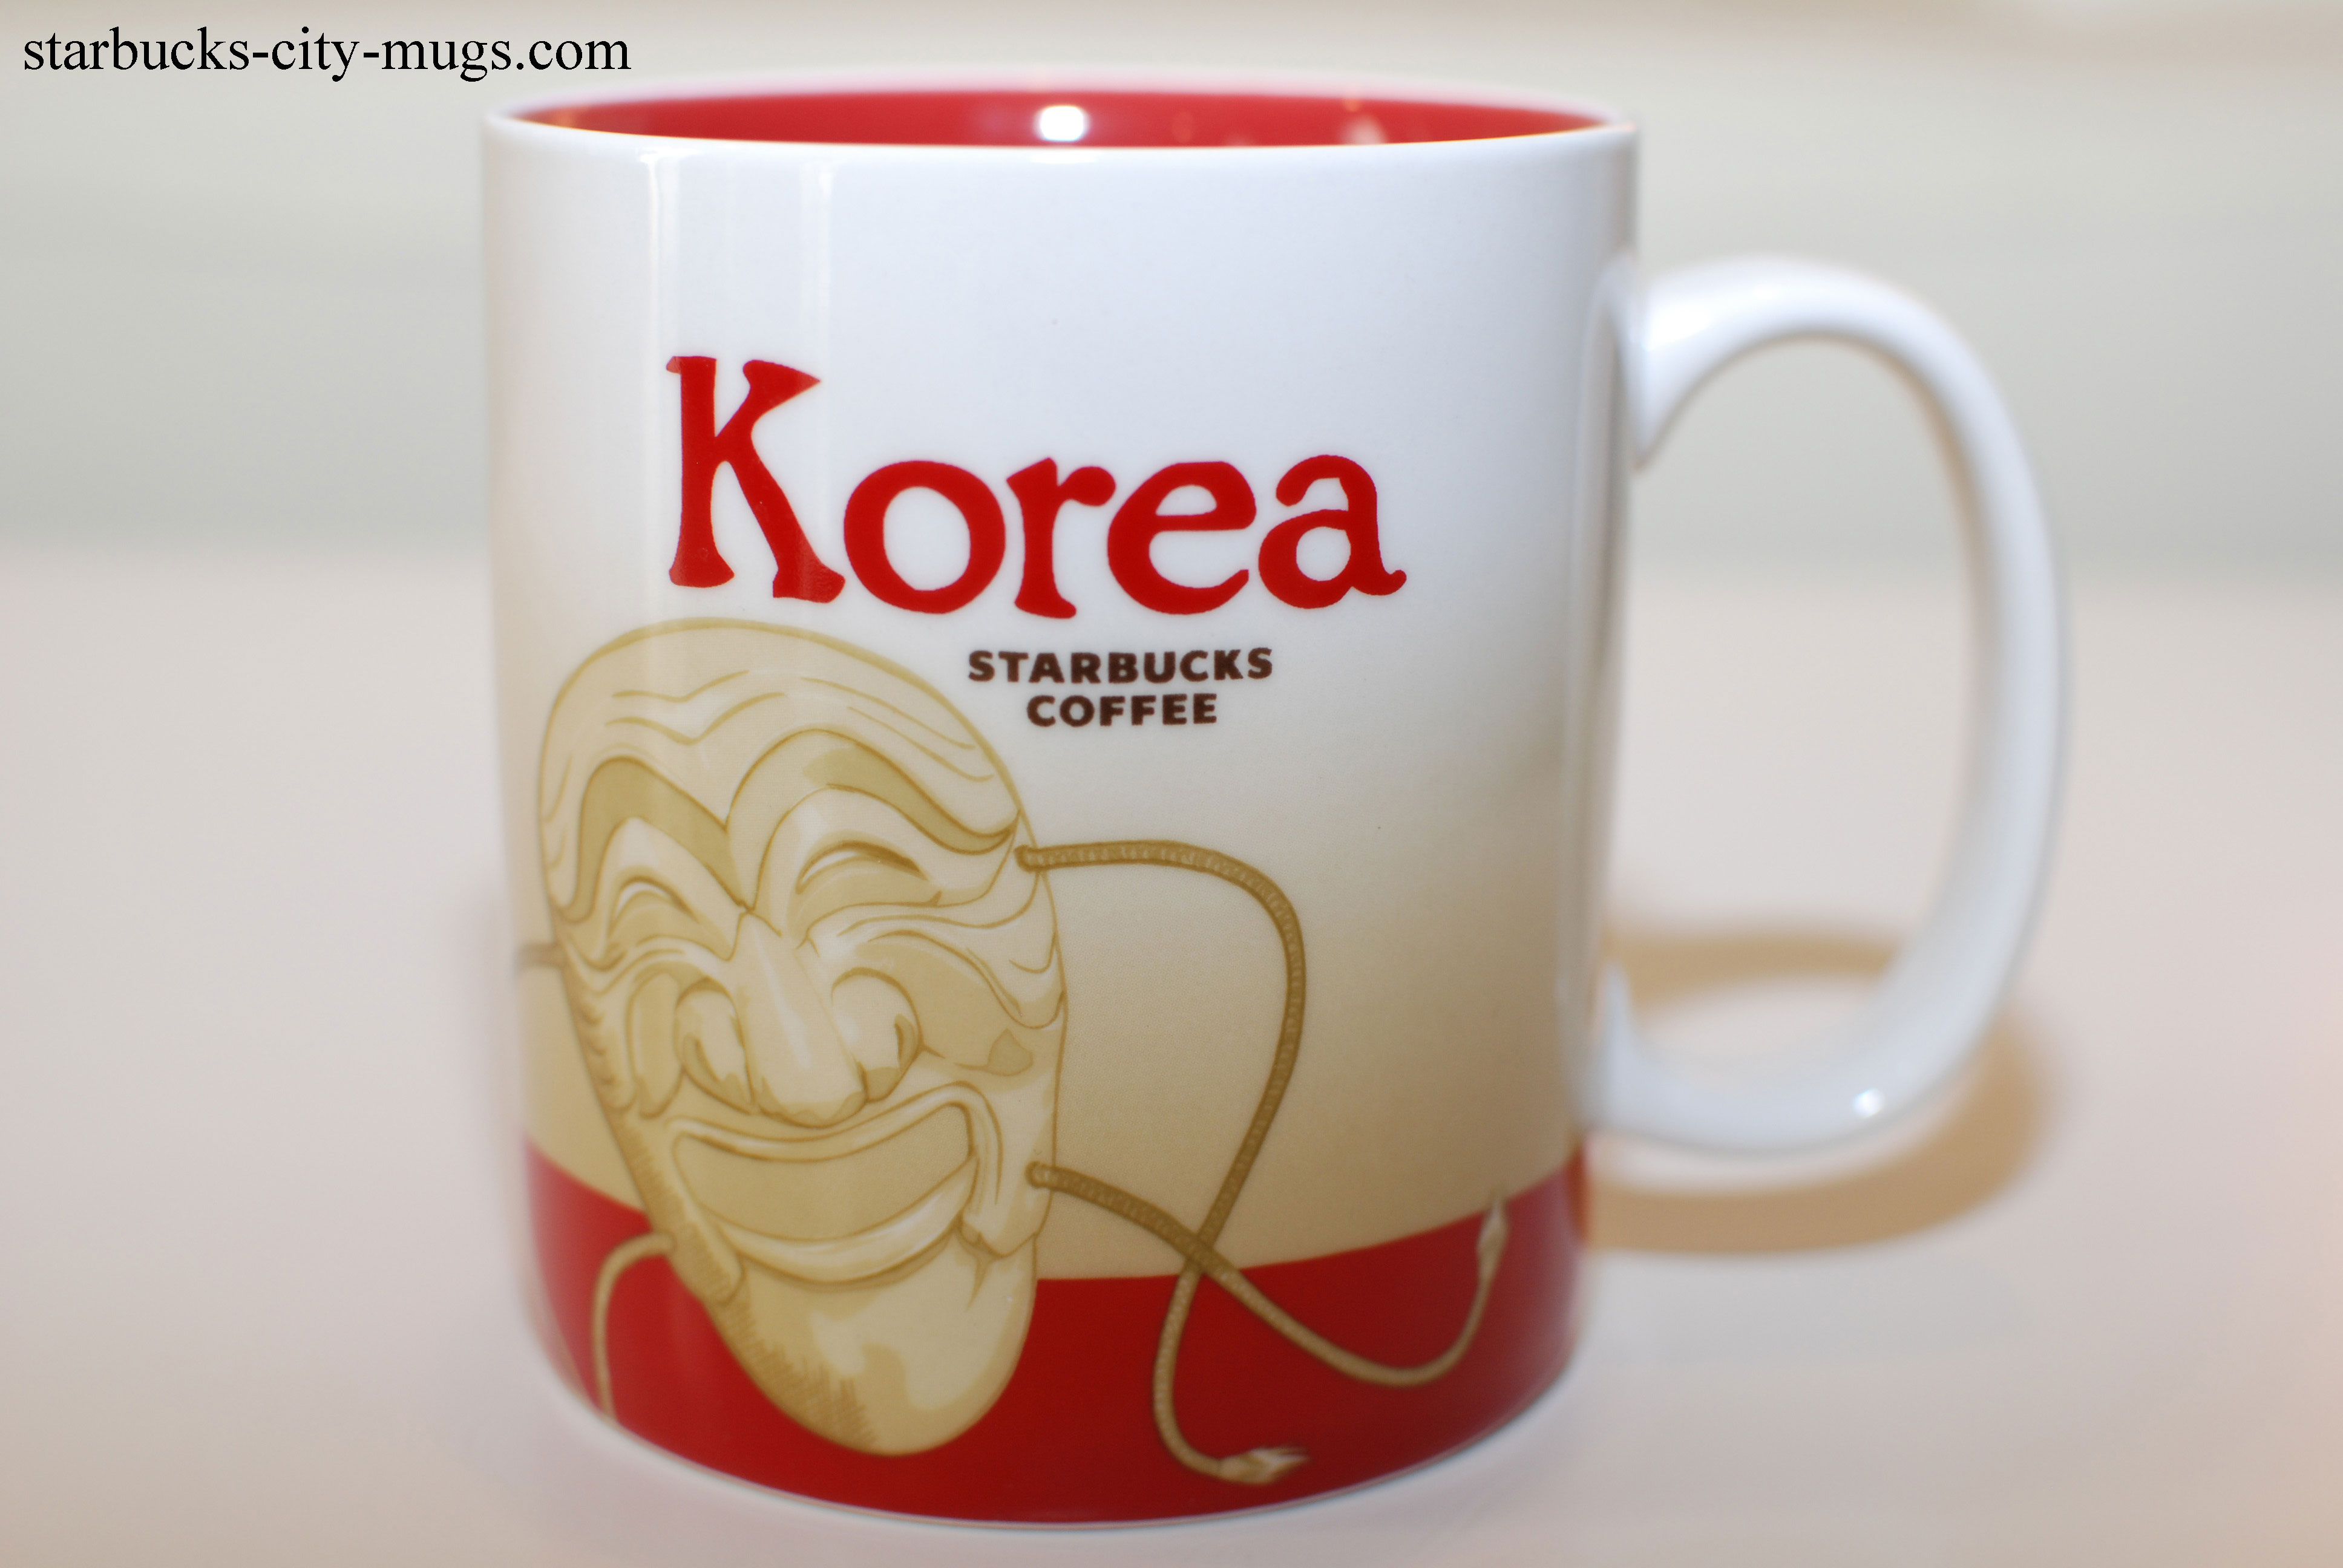 Korea | Starbucks City Mugs